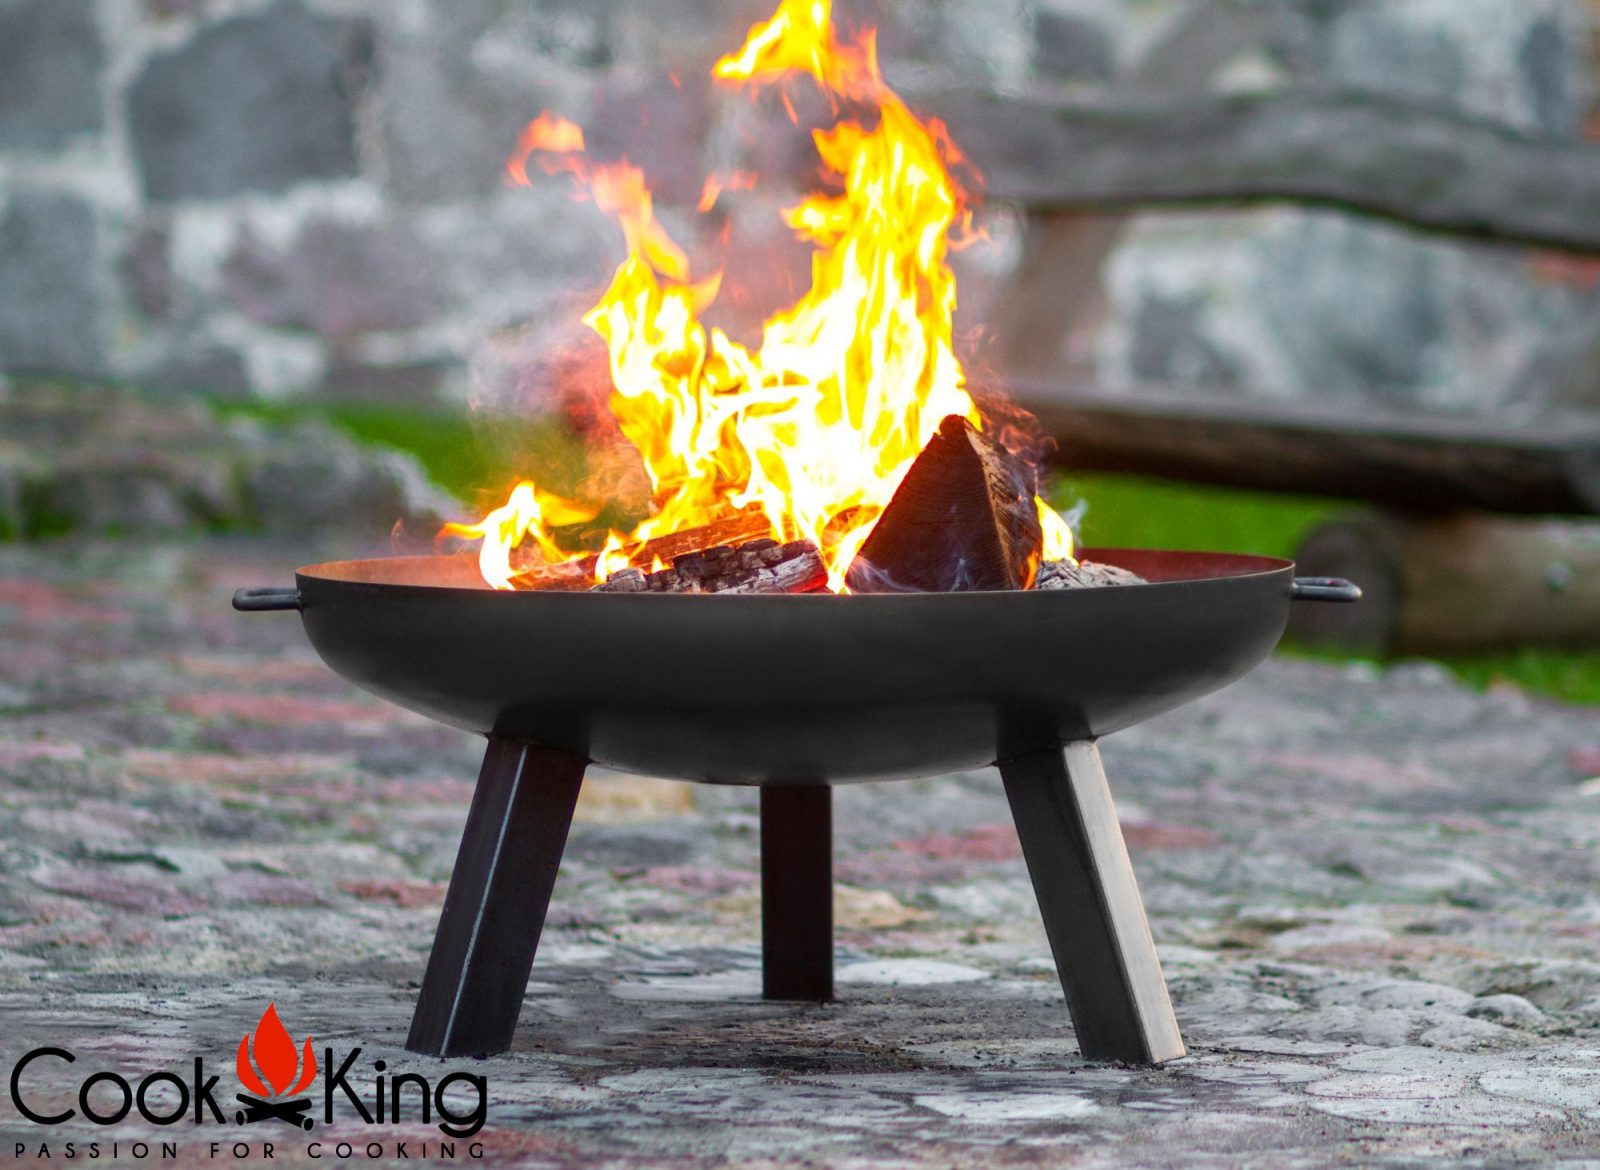 111256 CookKing Fire Bowl Polo 7 | Avant Garden